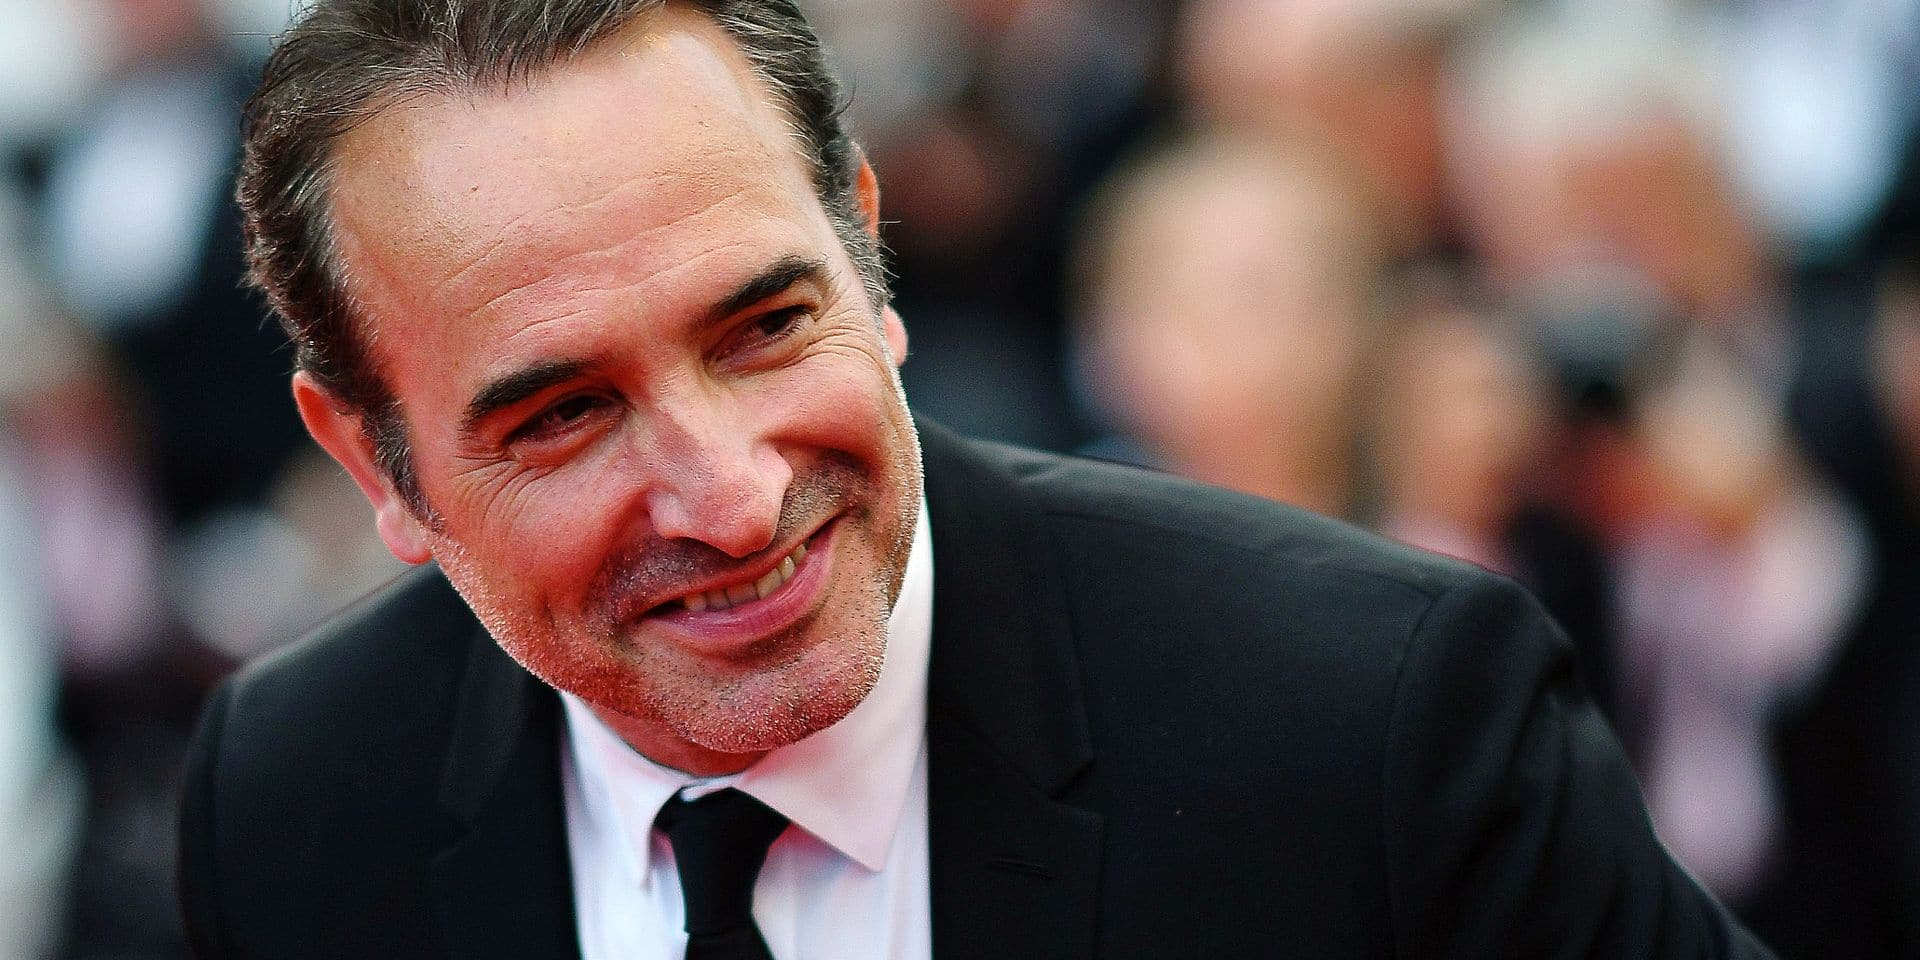 "(FILES) In this file photo taken on May 20, 2019 French actor Jean Dujardin arrives for the screening of the film ""La Belle Epoque"" at the 72nd edition of the Cannes Film Festival in Cannes, southern France. - Jean Dujardin is playing in the film called ""Le Daim"" that will be showing in the French cinemas from June 19, 2019. (Photo by Alberto PIZZOLI / AFP)"